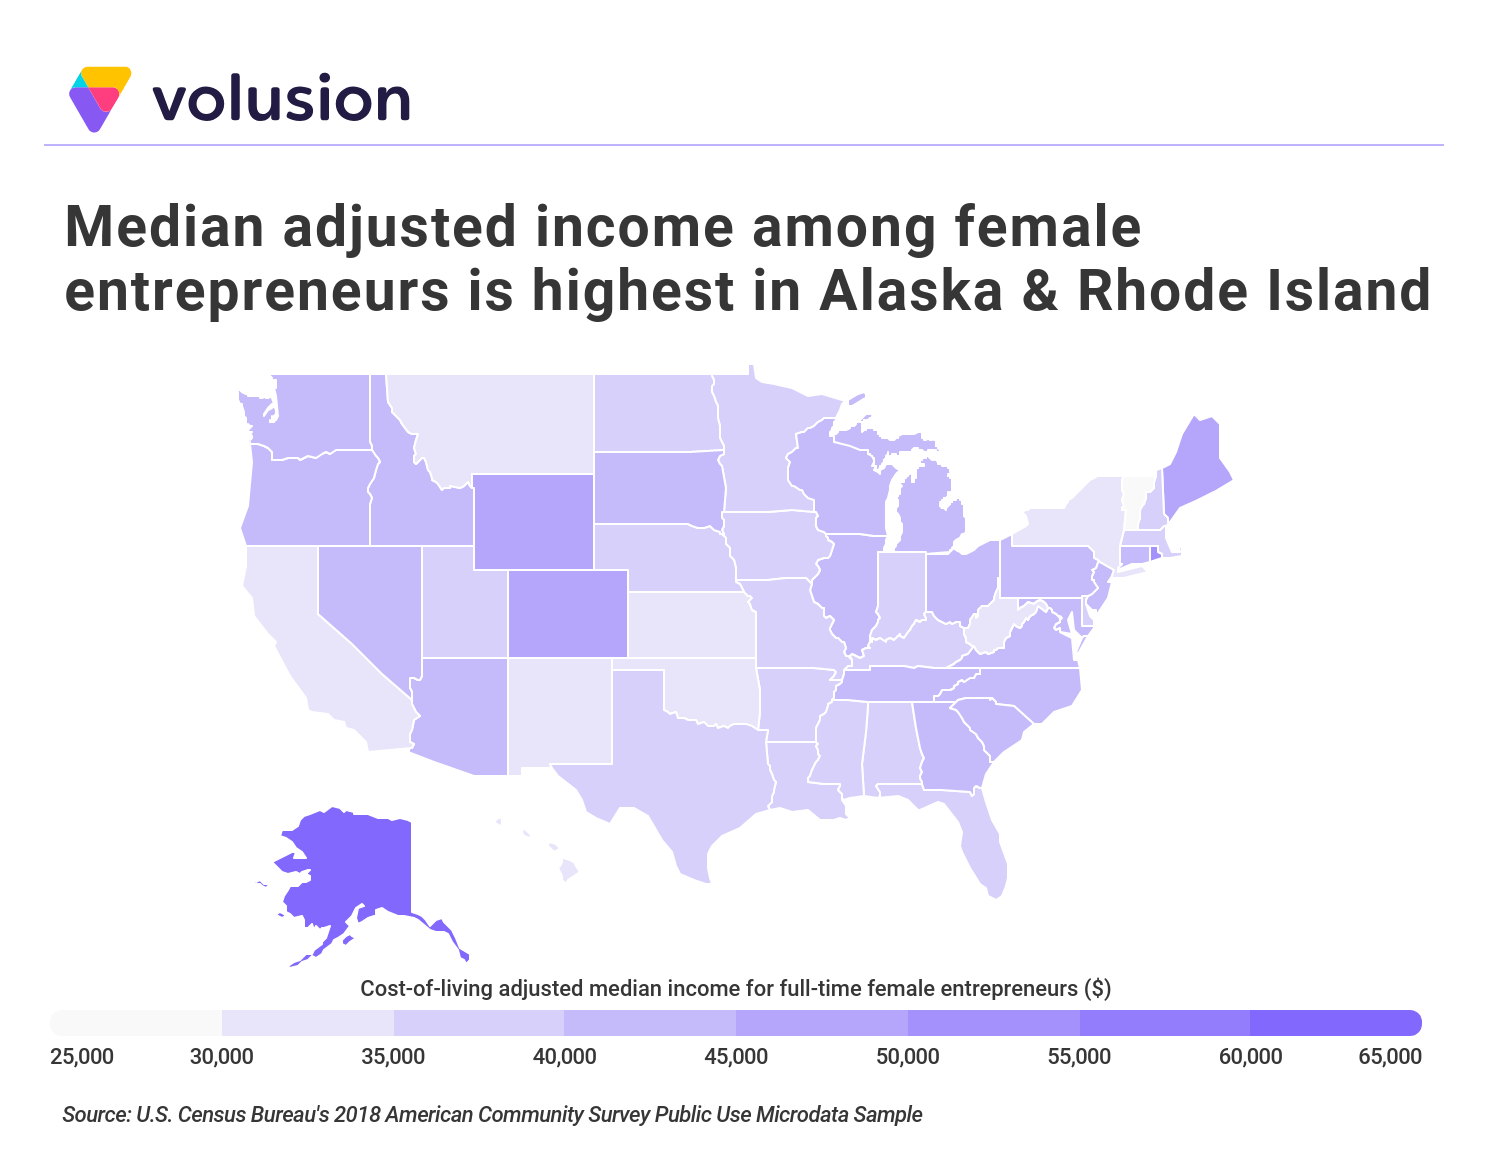 Graphic illustrating that the median adjusted income among female entrepreneurs is highest in Alaska and Rhode Island.